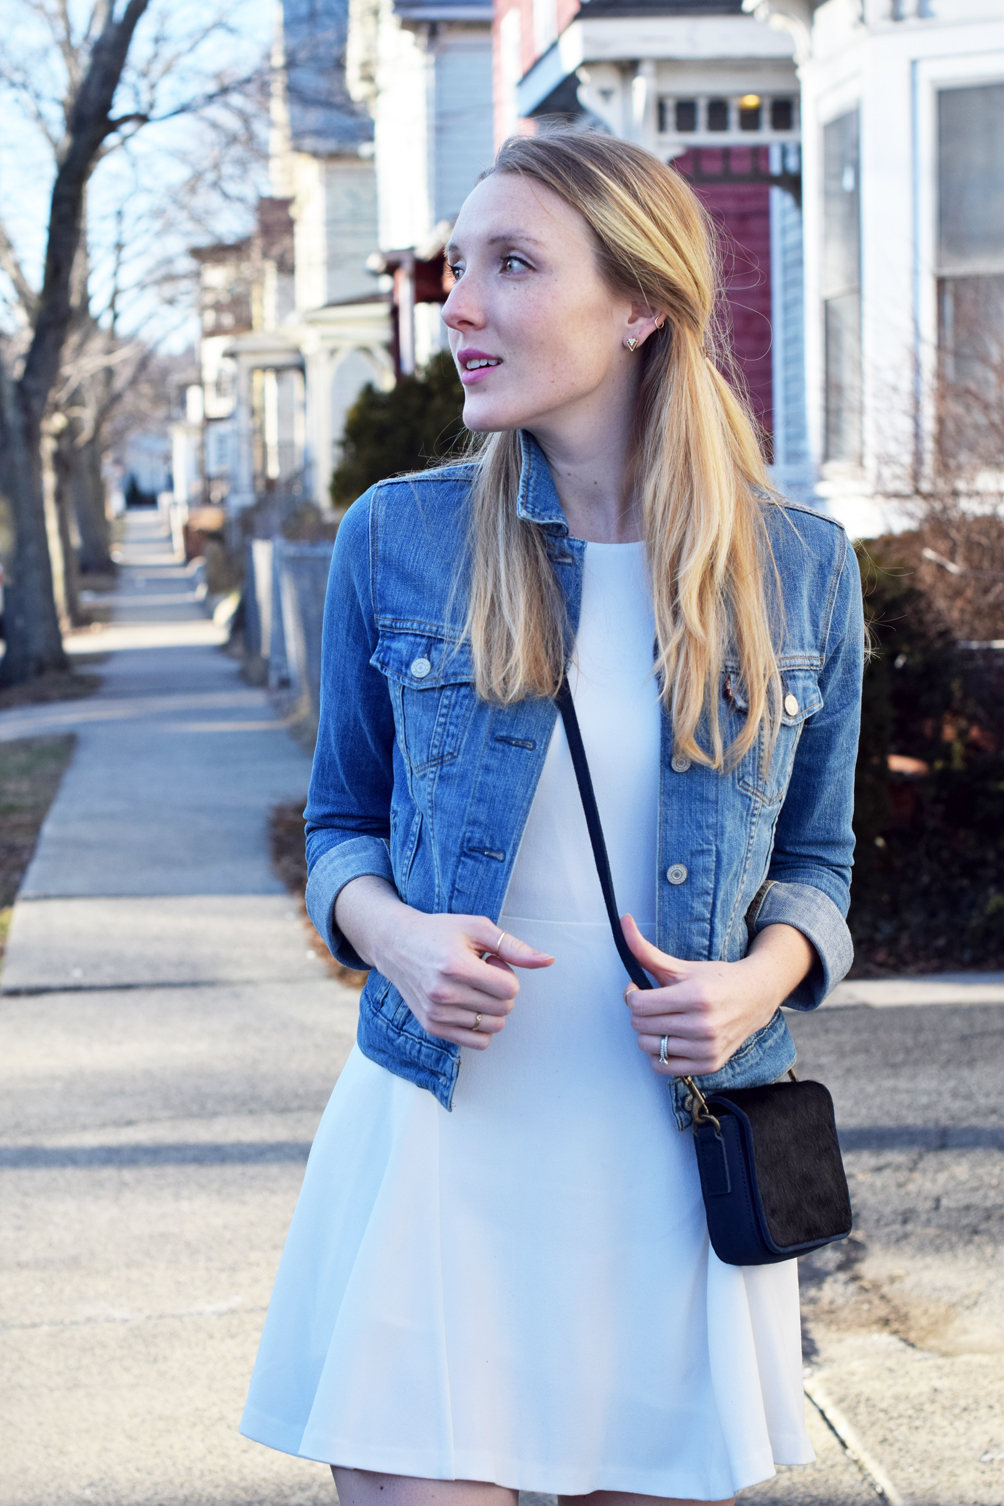 jean jacket outfit for spring and summer - one brass fox